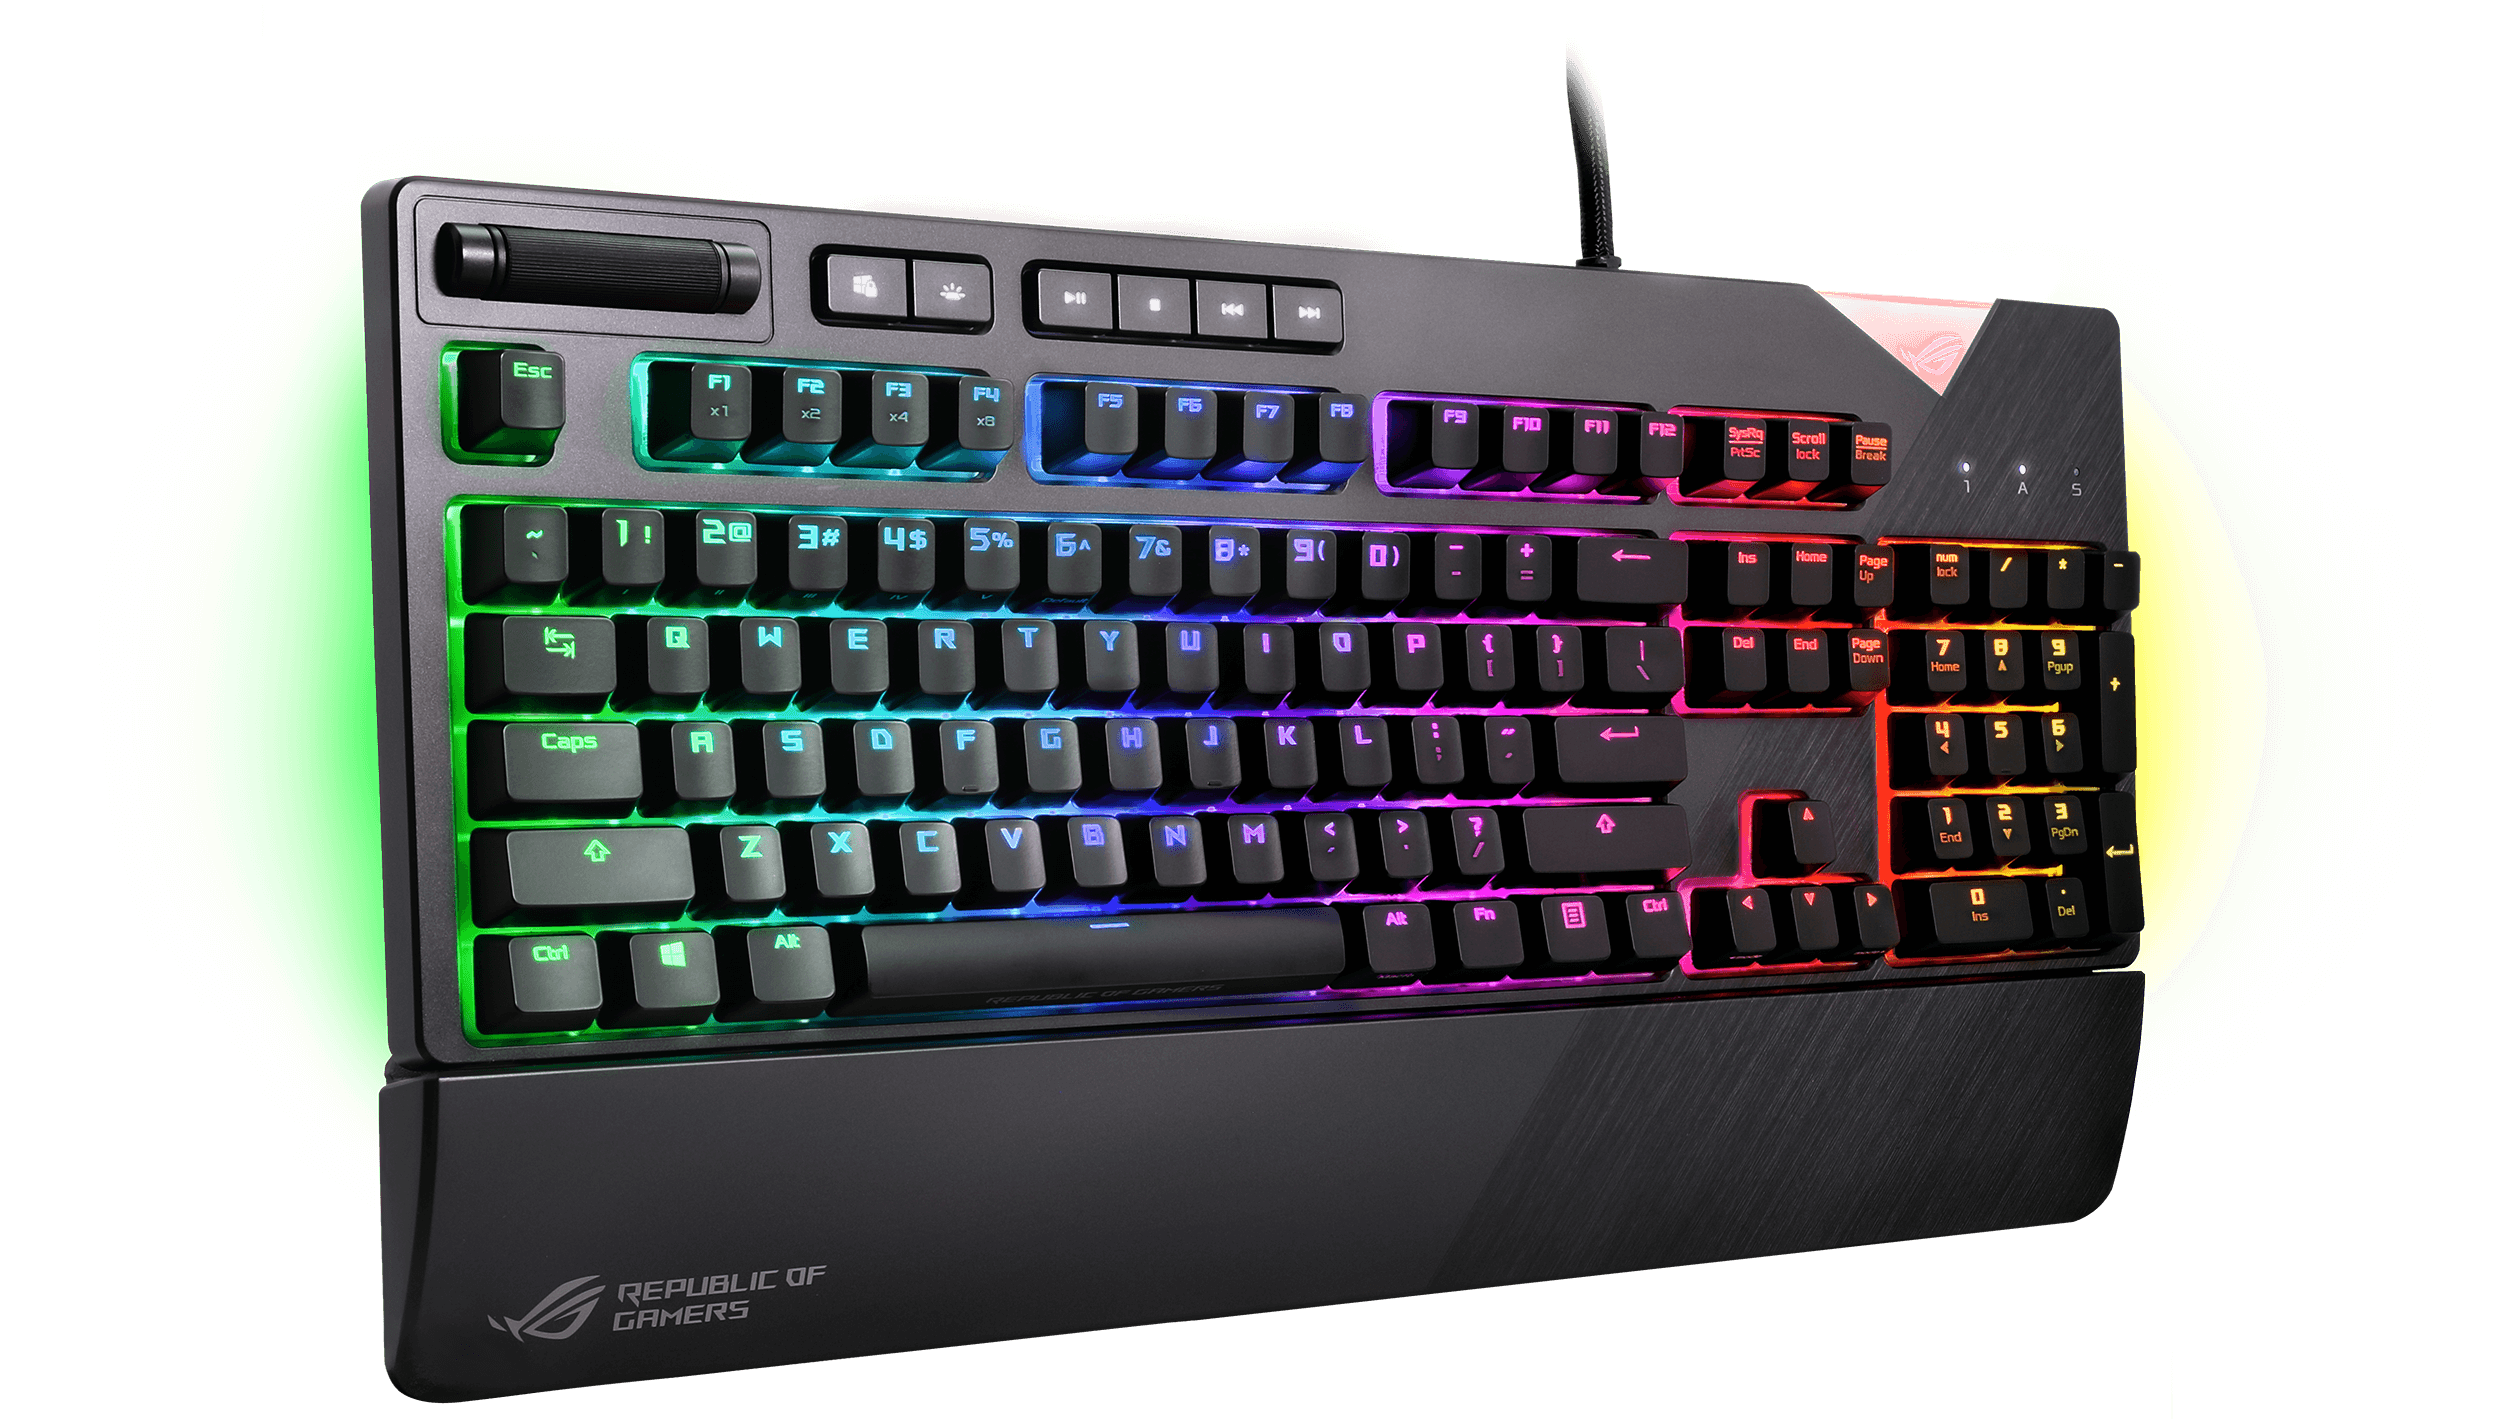 ROG Strix Flare 3D 1 S - ASUS ROG Strix Flare Mechanical Gaming Keyboard Now Available in PH